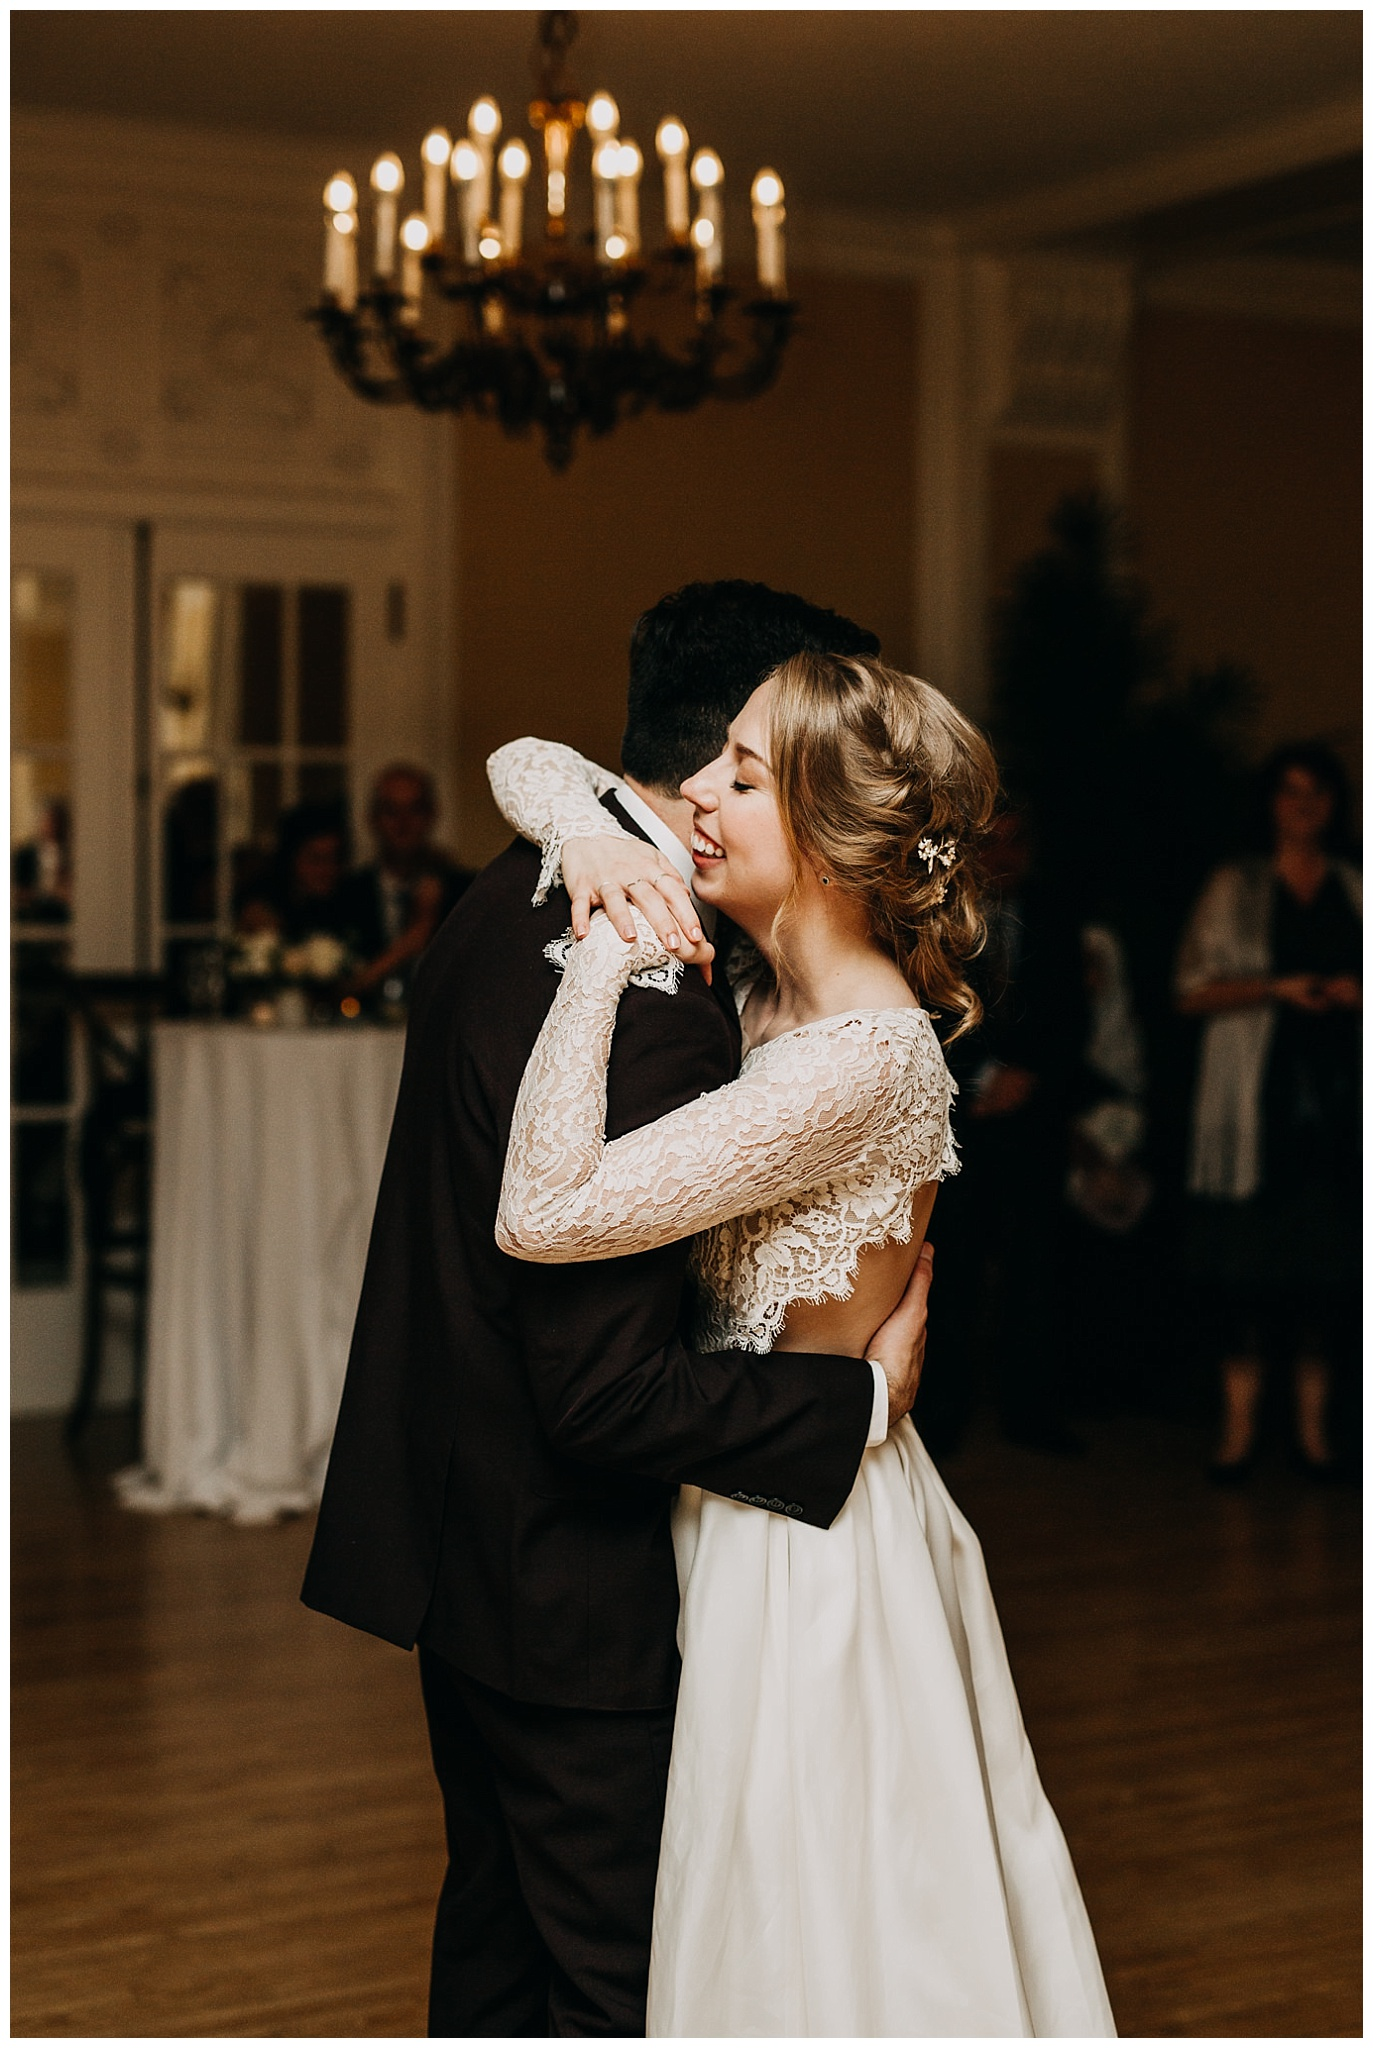 bride and groom first dance at Hycroft Manor wedding